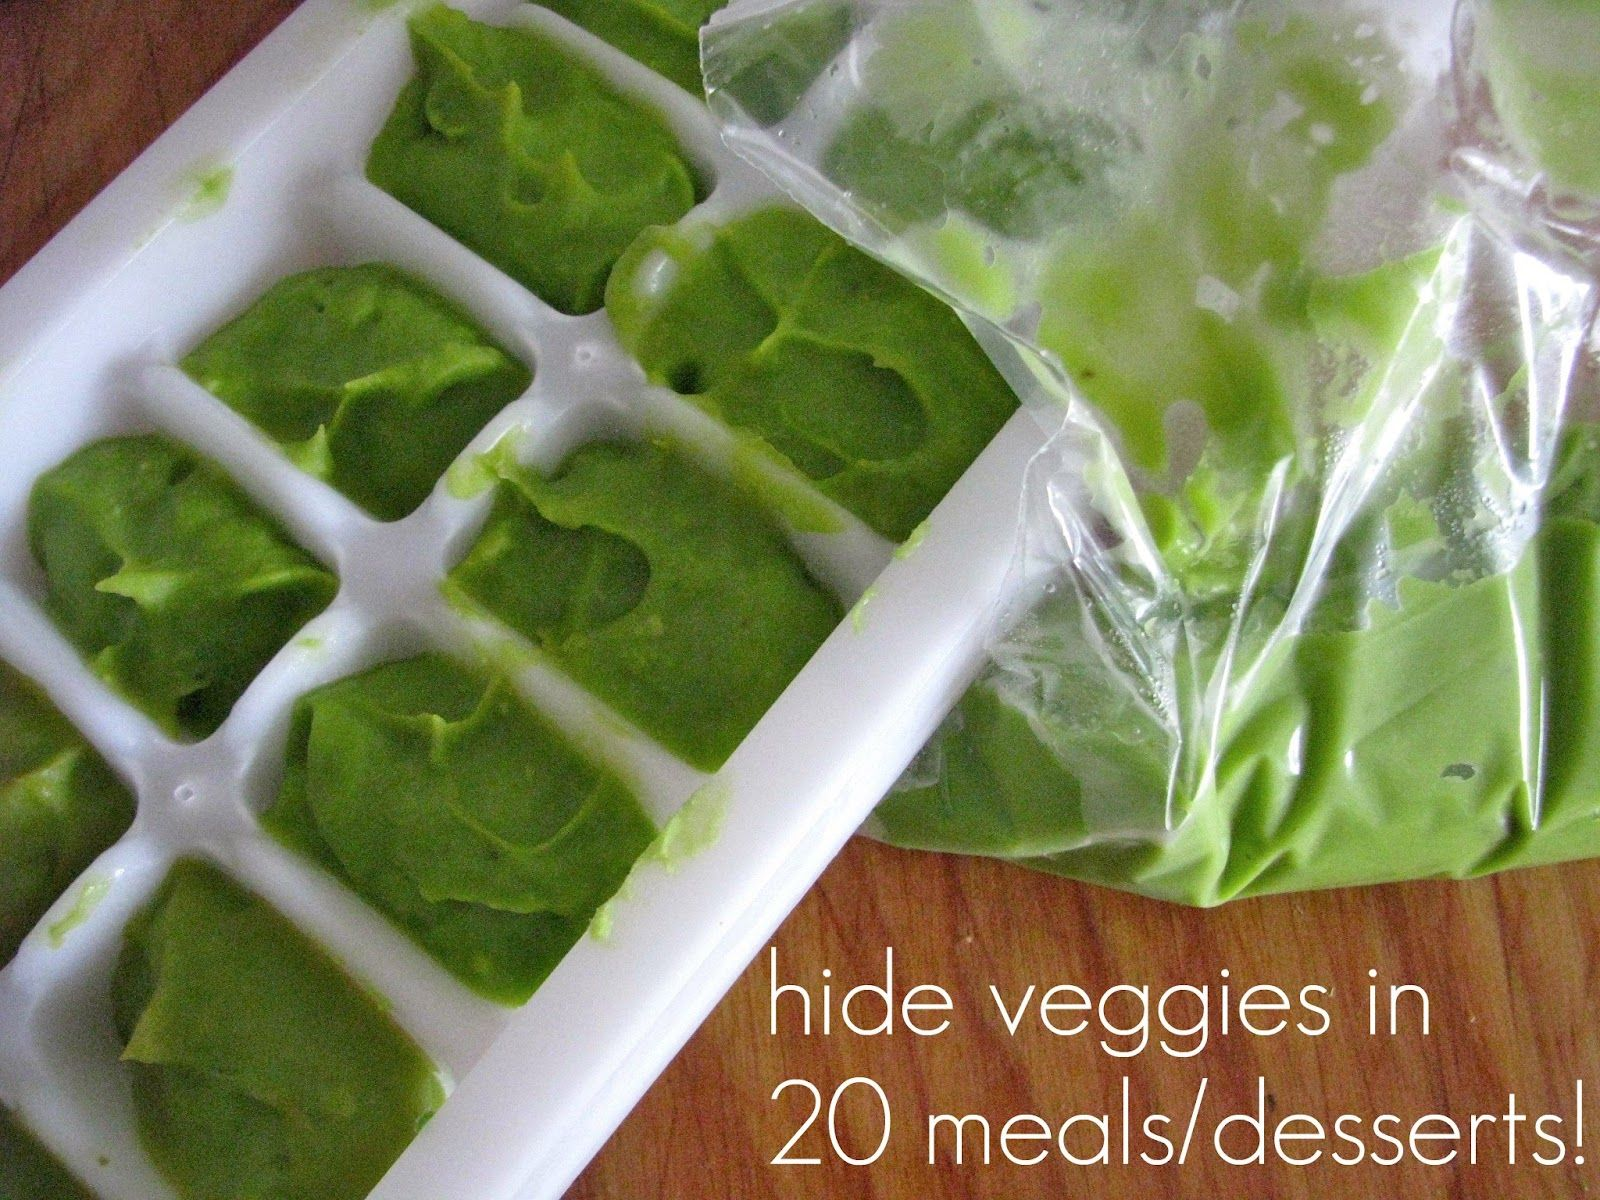 Avocado puree pic above ok i must give credit were credit is due the buckouts blessings hide veggies in 20 mealsdesserts forumfinder Choice Image